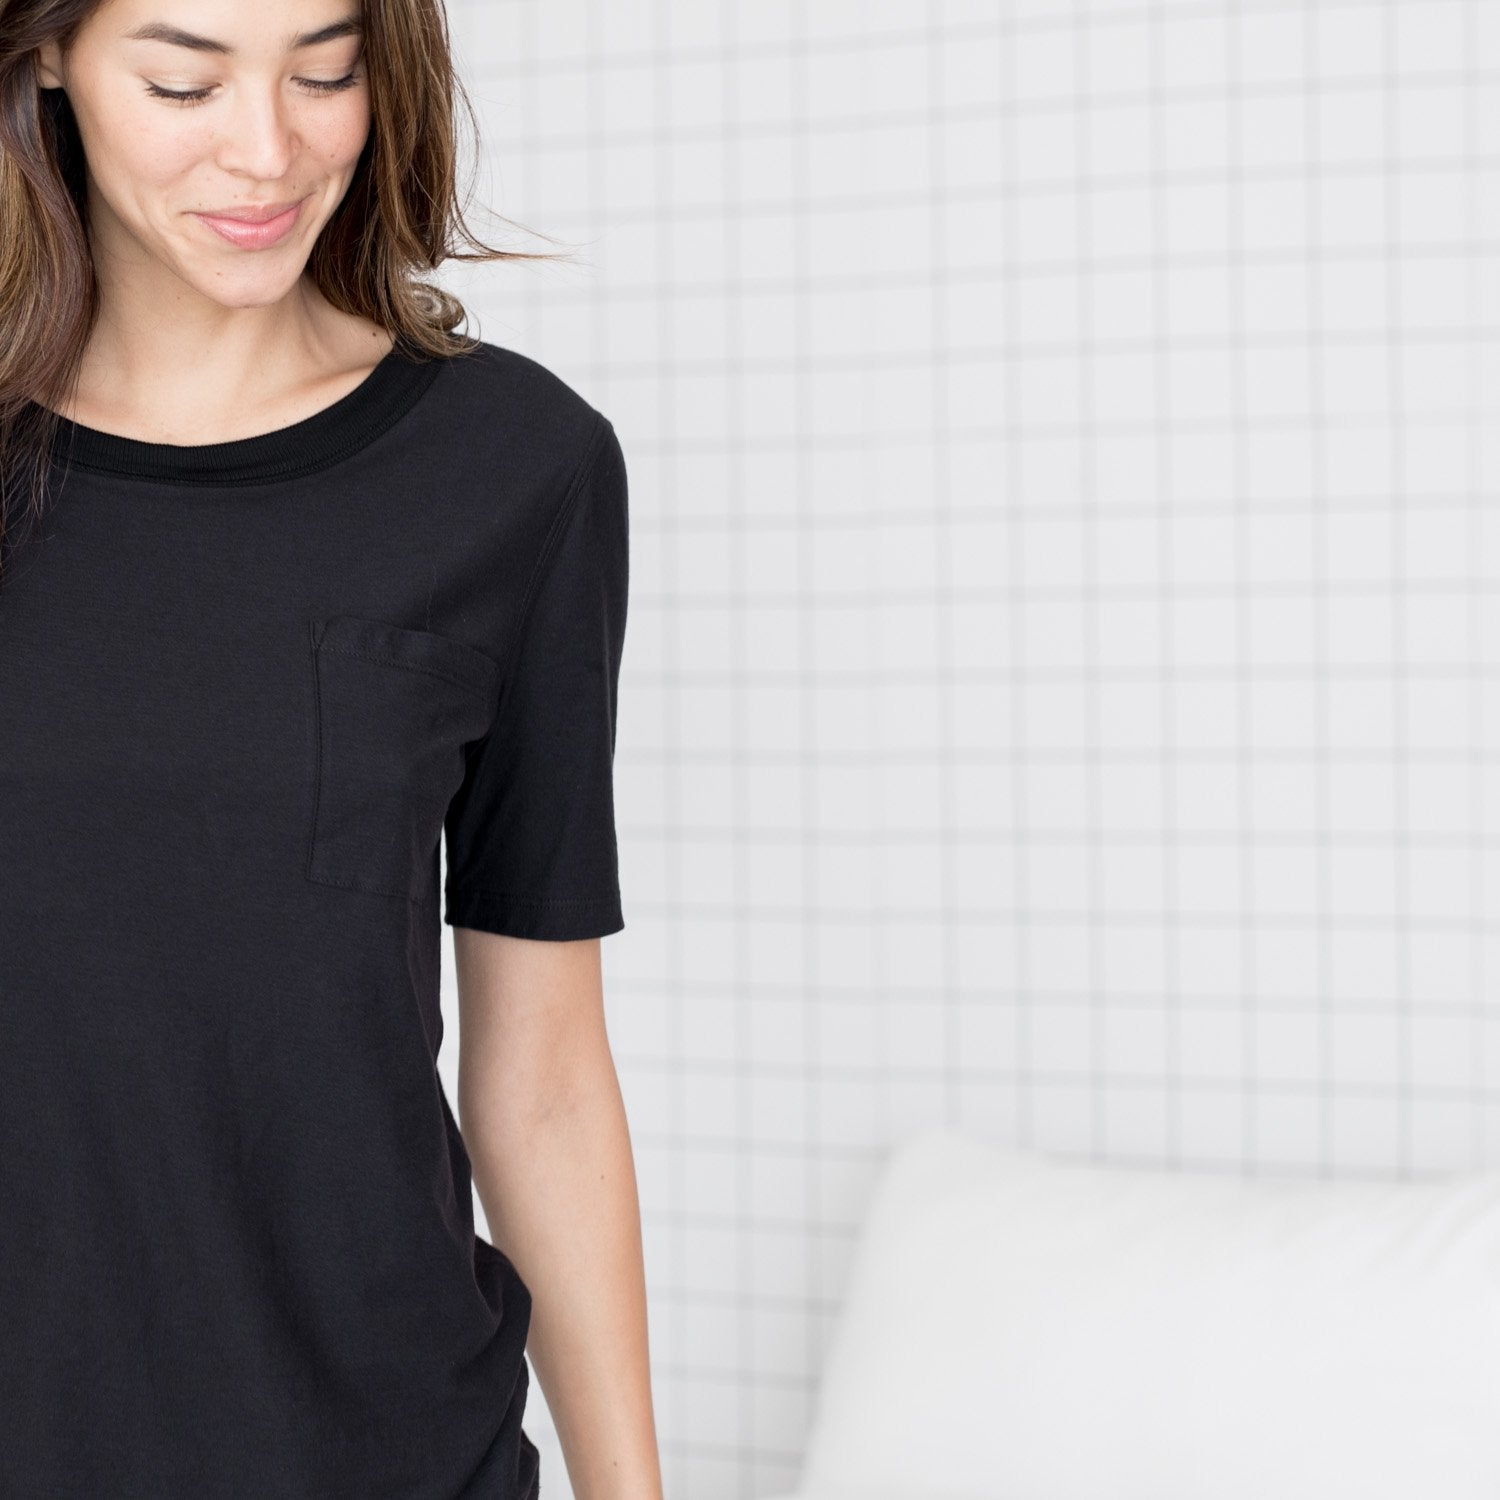 Lunya Sleepwear Cool Short Sleeve Tee - #Black